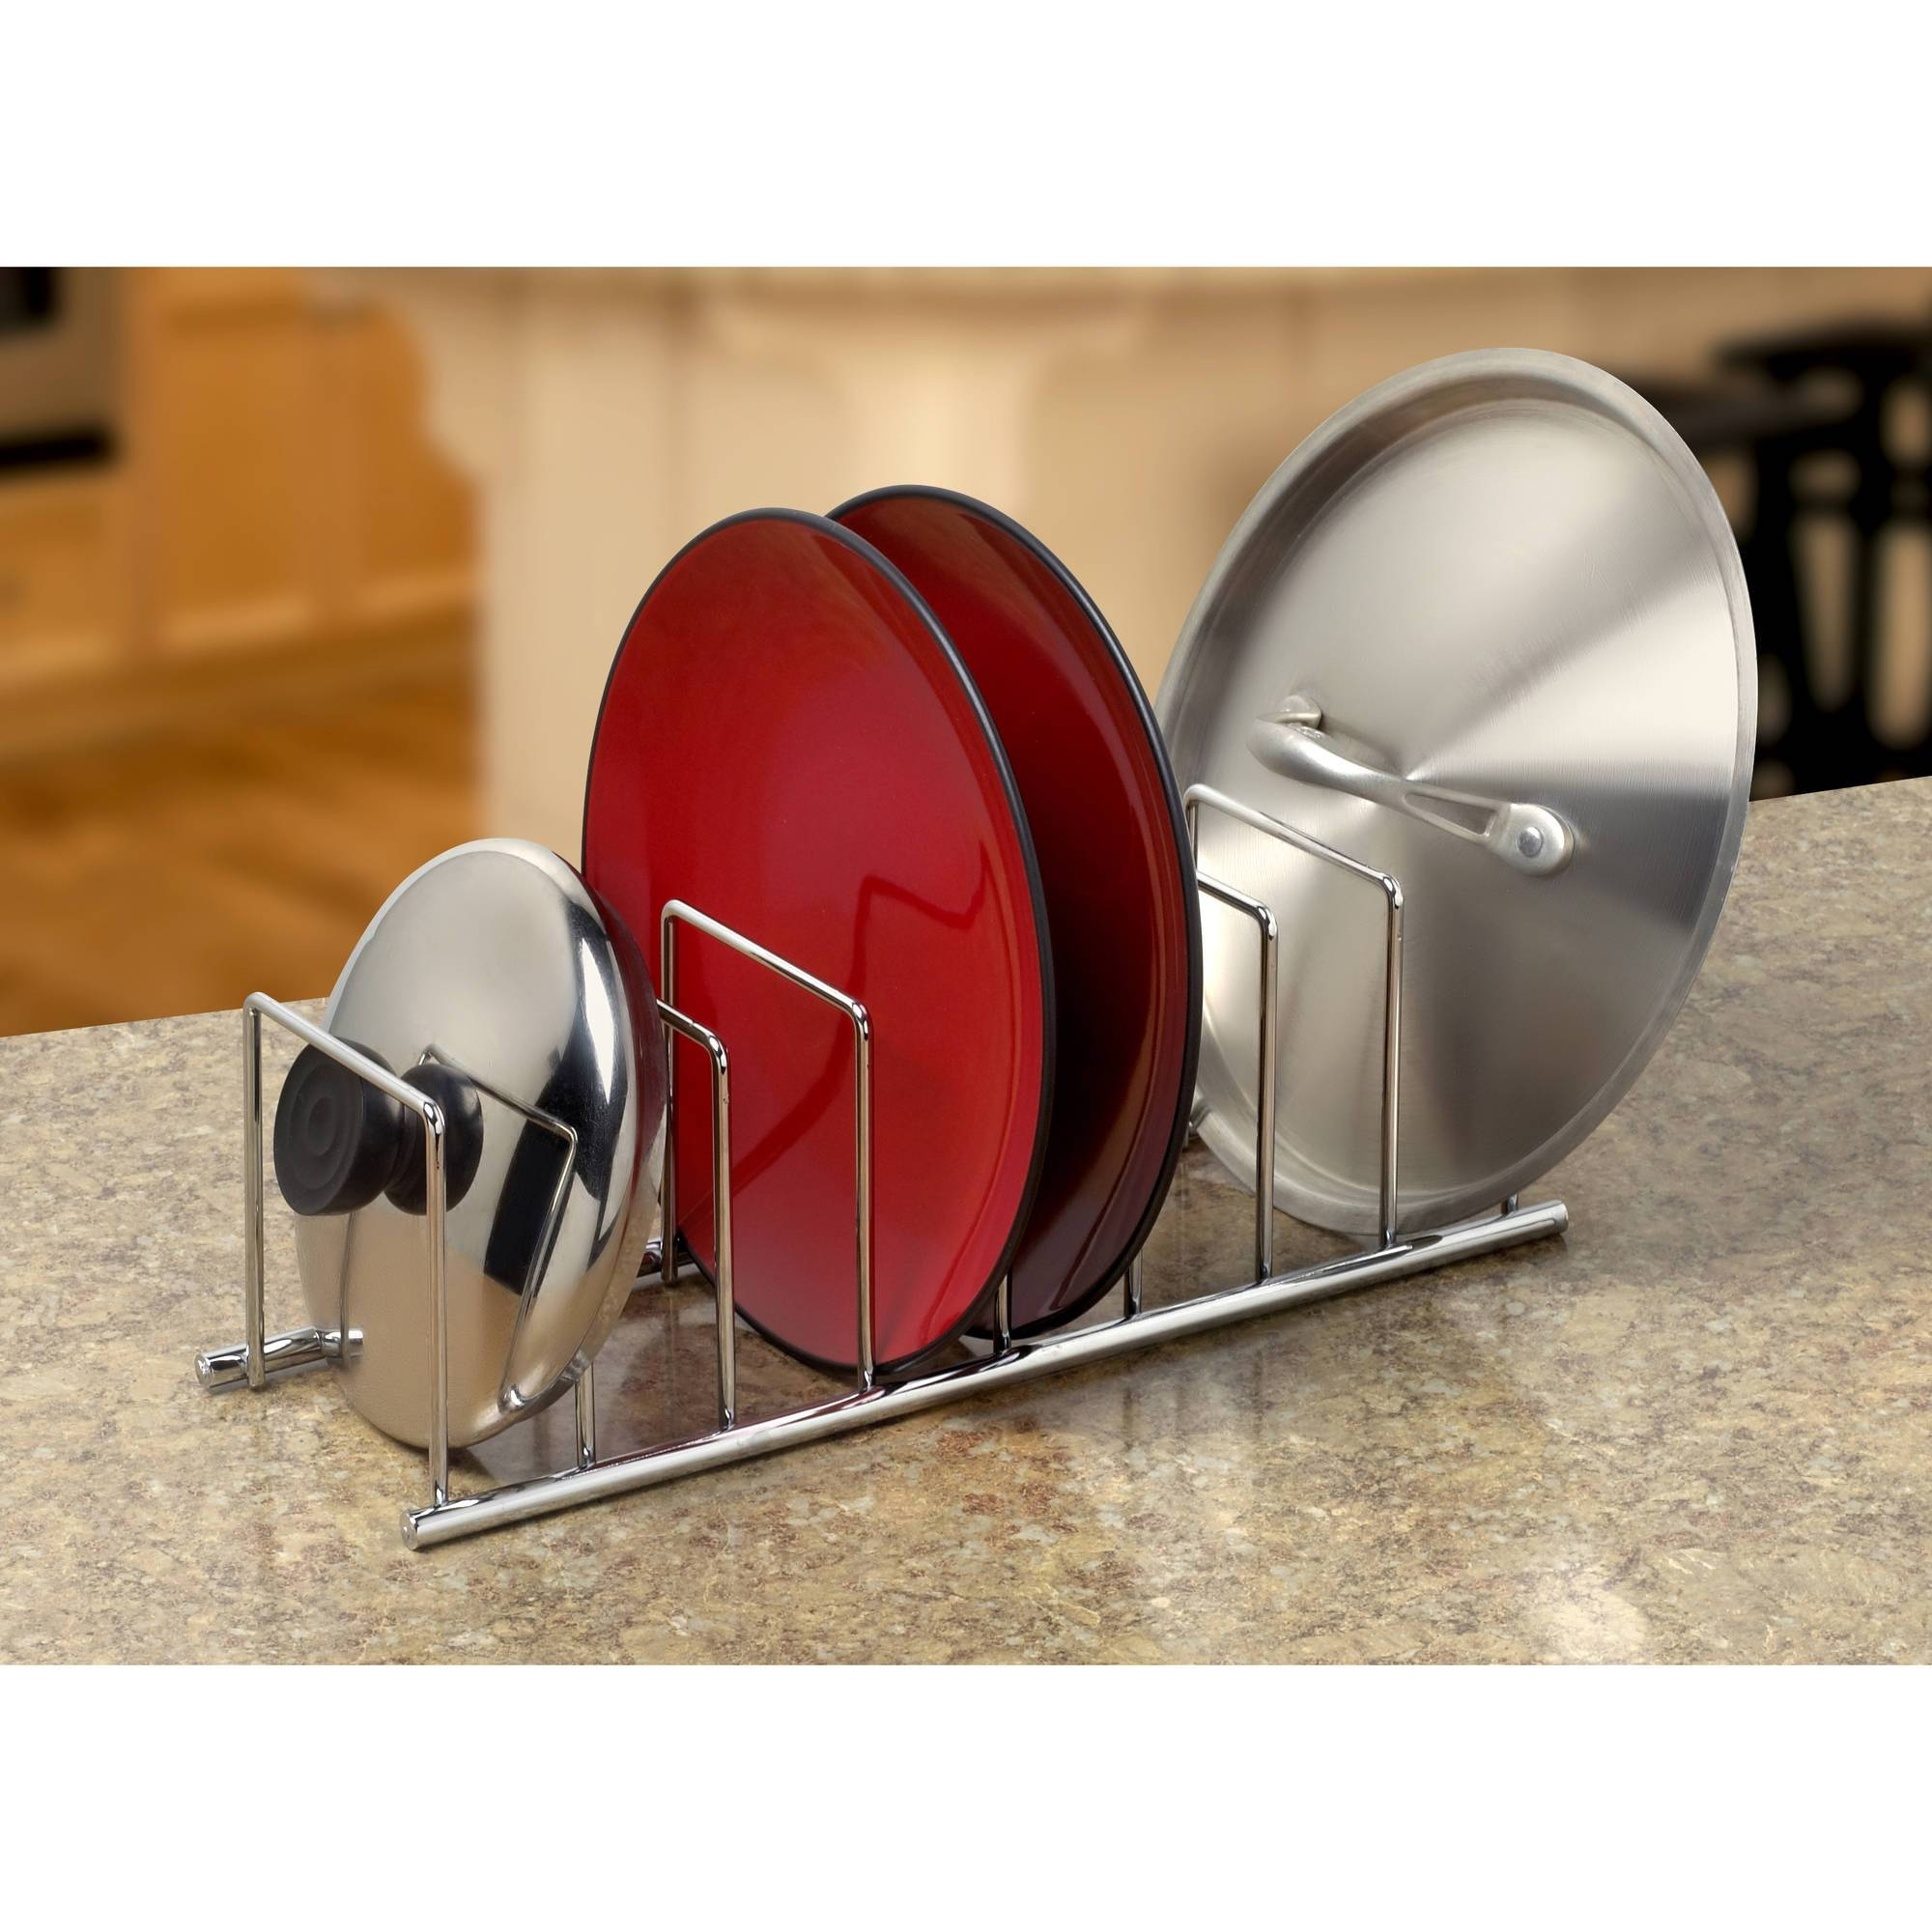 Mainstays Paper Towel Holder, Mounted – Walmart Inside Latest Walmart Metal Wall Art (View 16 of 30)